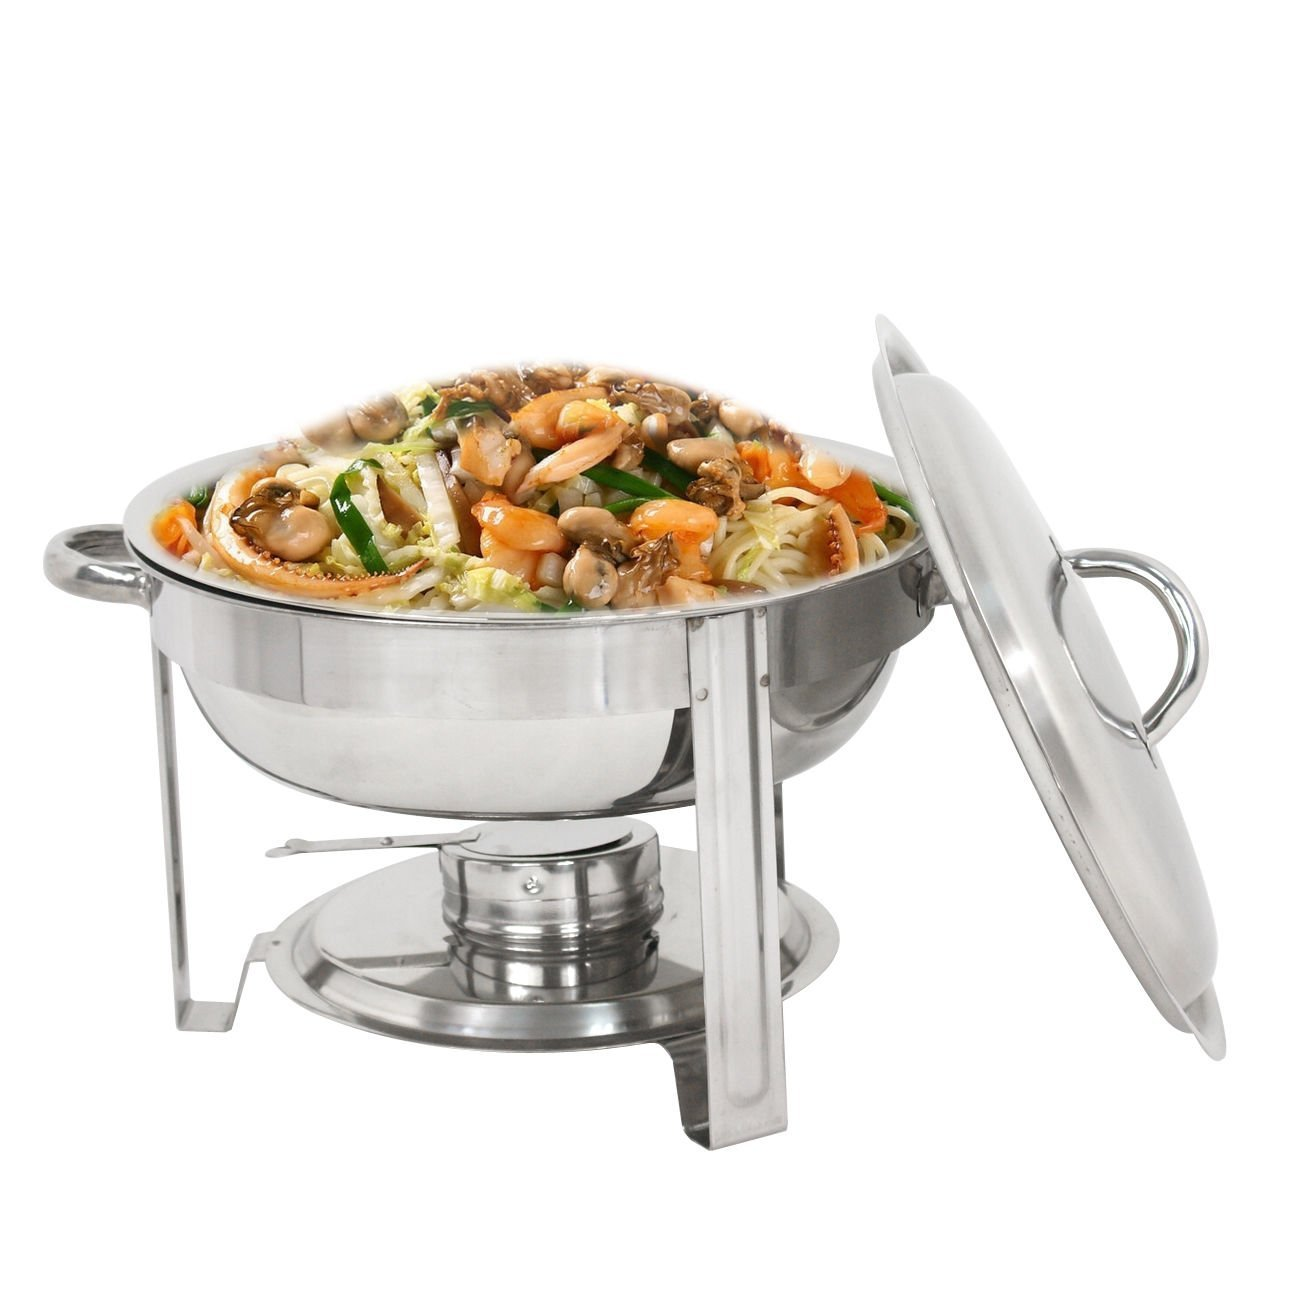 Round Chafing Dish Bang for Buck